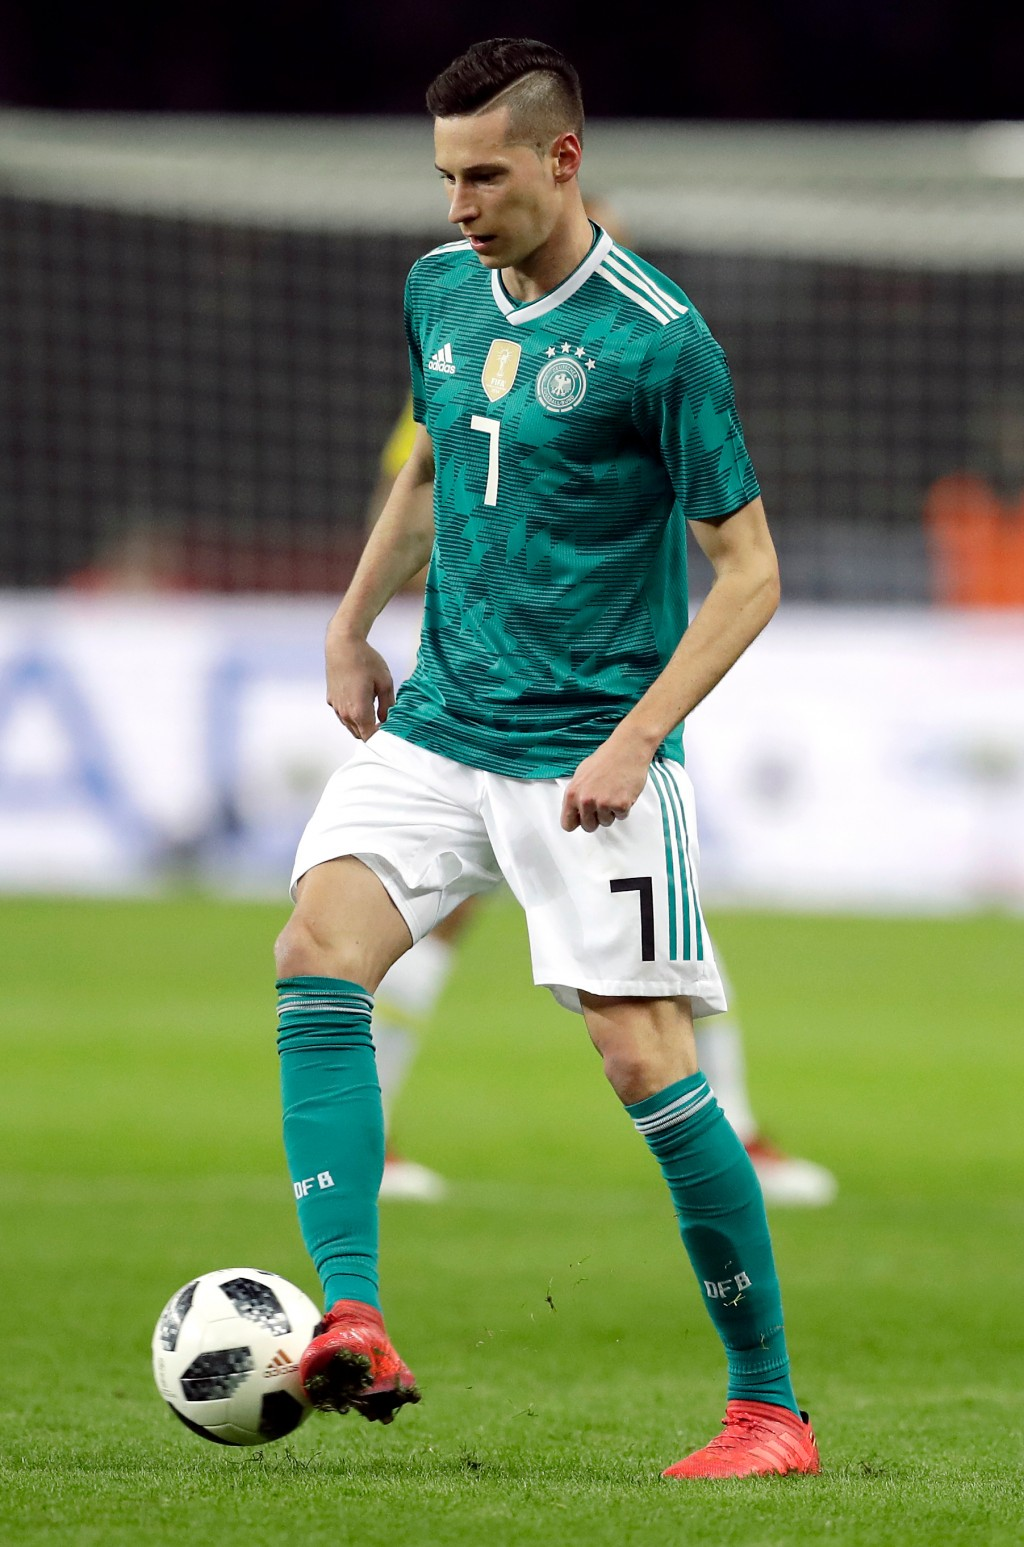 In this photo taken on Tuesday, March 27, 2018, Germany's Julian Draxler controls the ball during the international friendly soccer match between Germ...